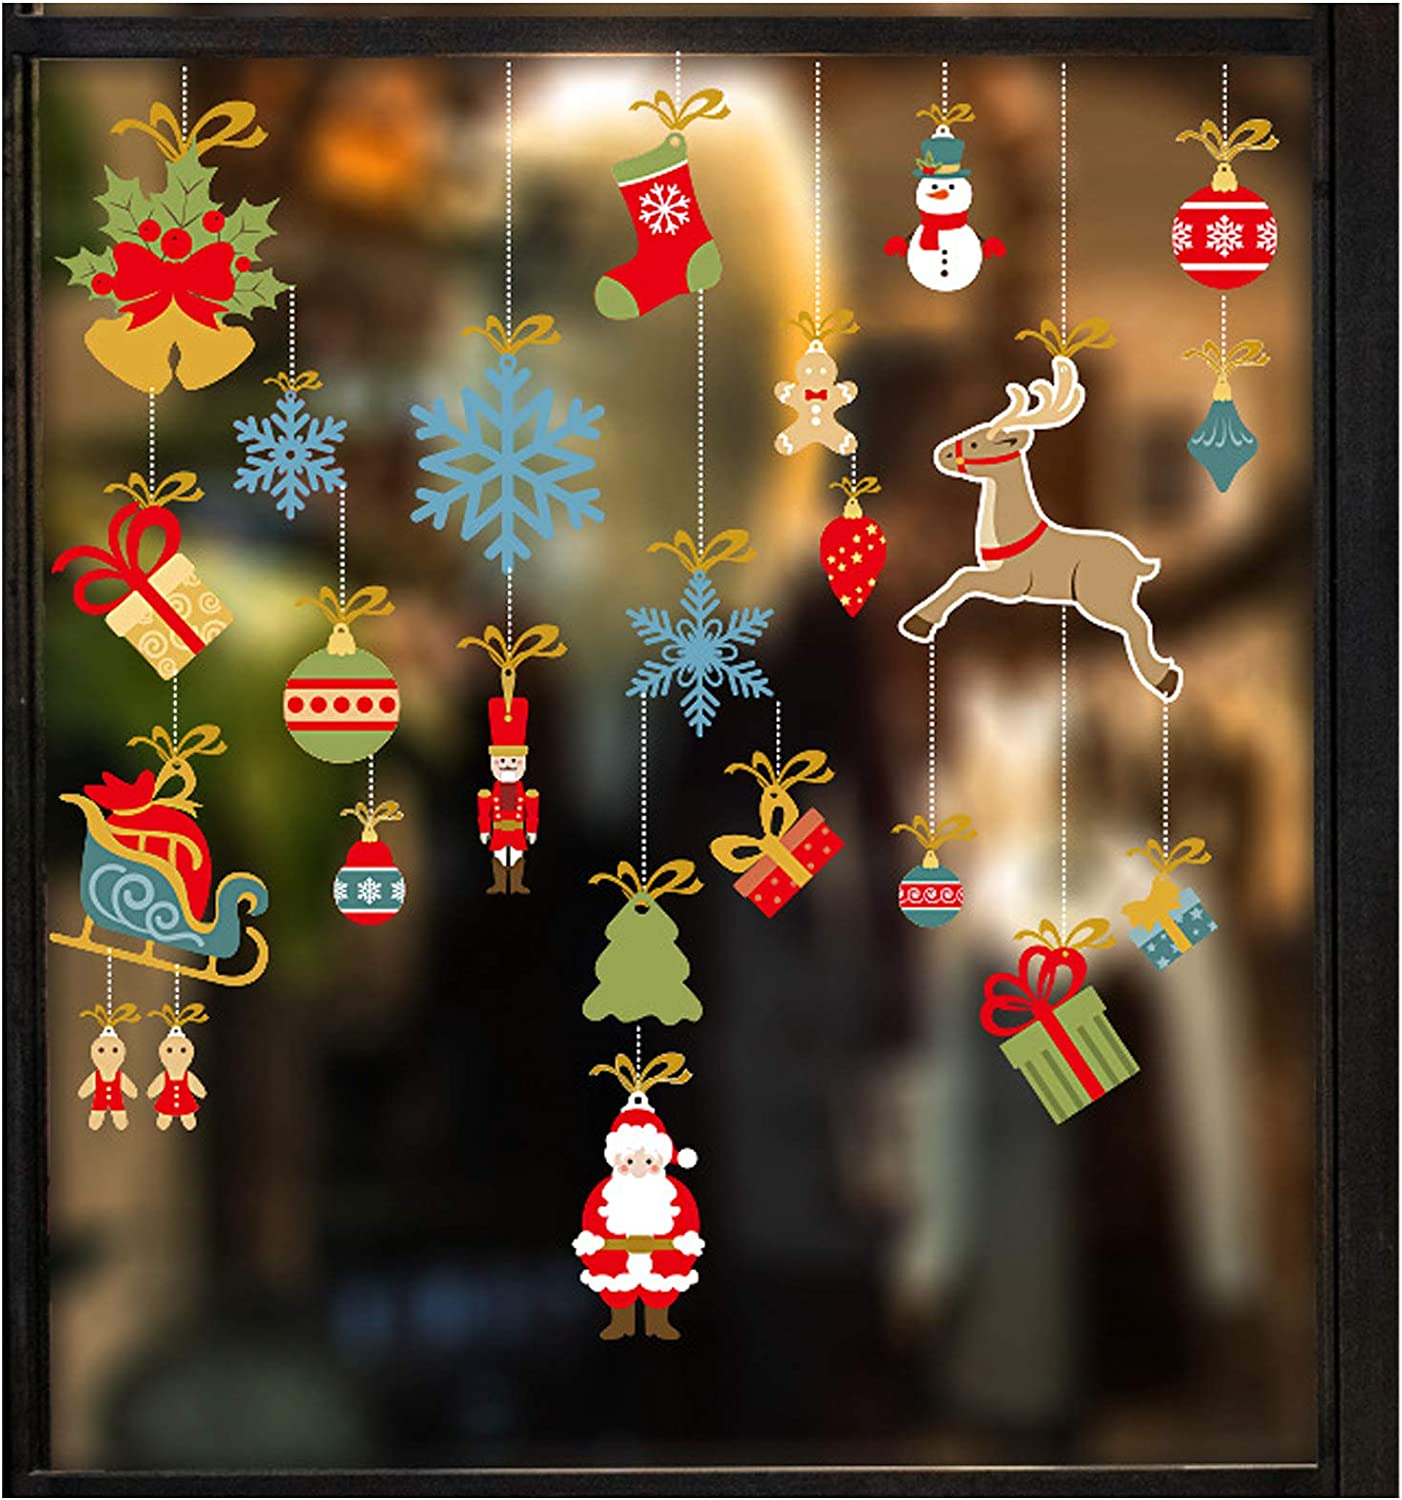 Christmas Wall Decals Windows Stickers, Snowflake Snowman Reindeer Window Wall Decal, DIY Lovely Vinyl Door Showcase Sticker, Xmas Self-Adhesive Holiday Decoration Removable Party Home Decor (1)